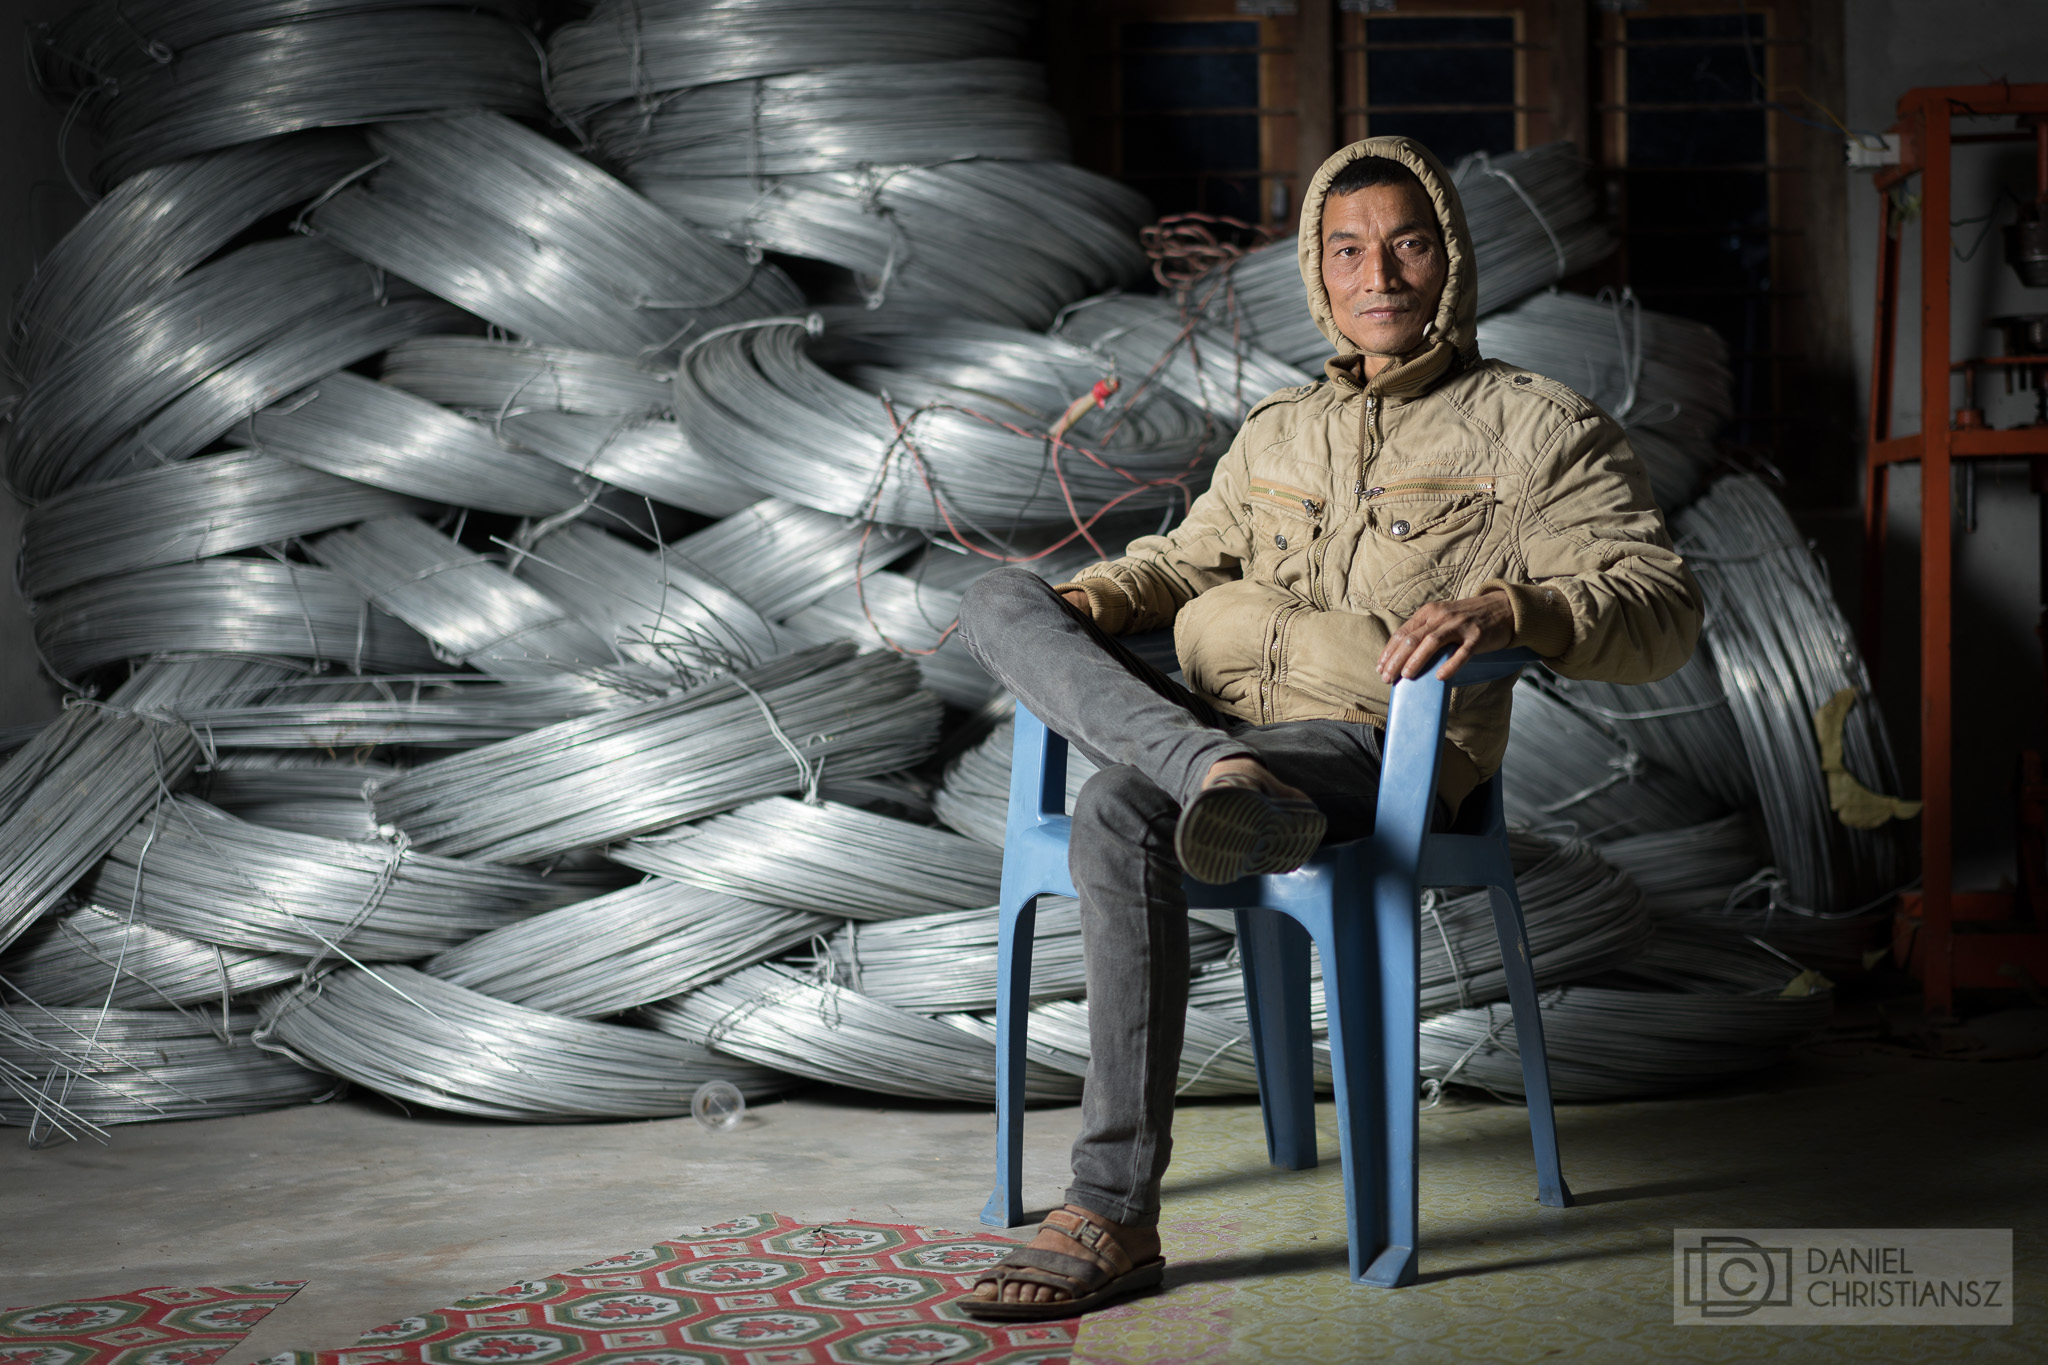 Man in Nepal Sitting on Chair